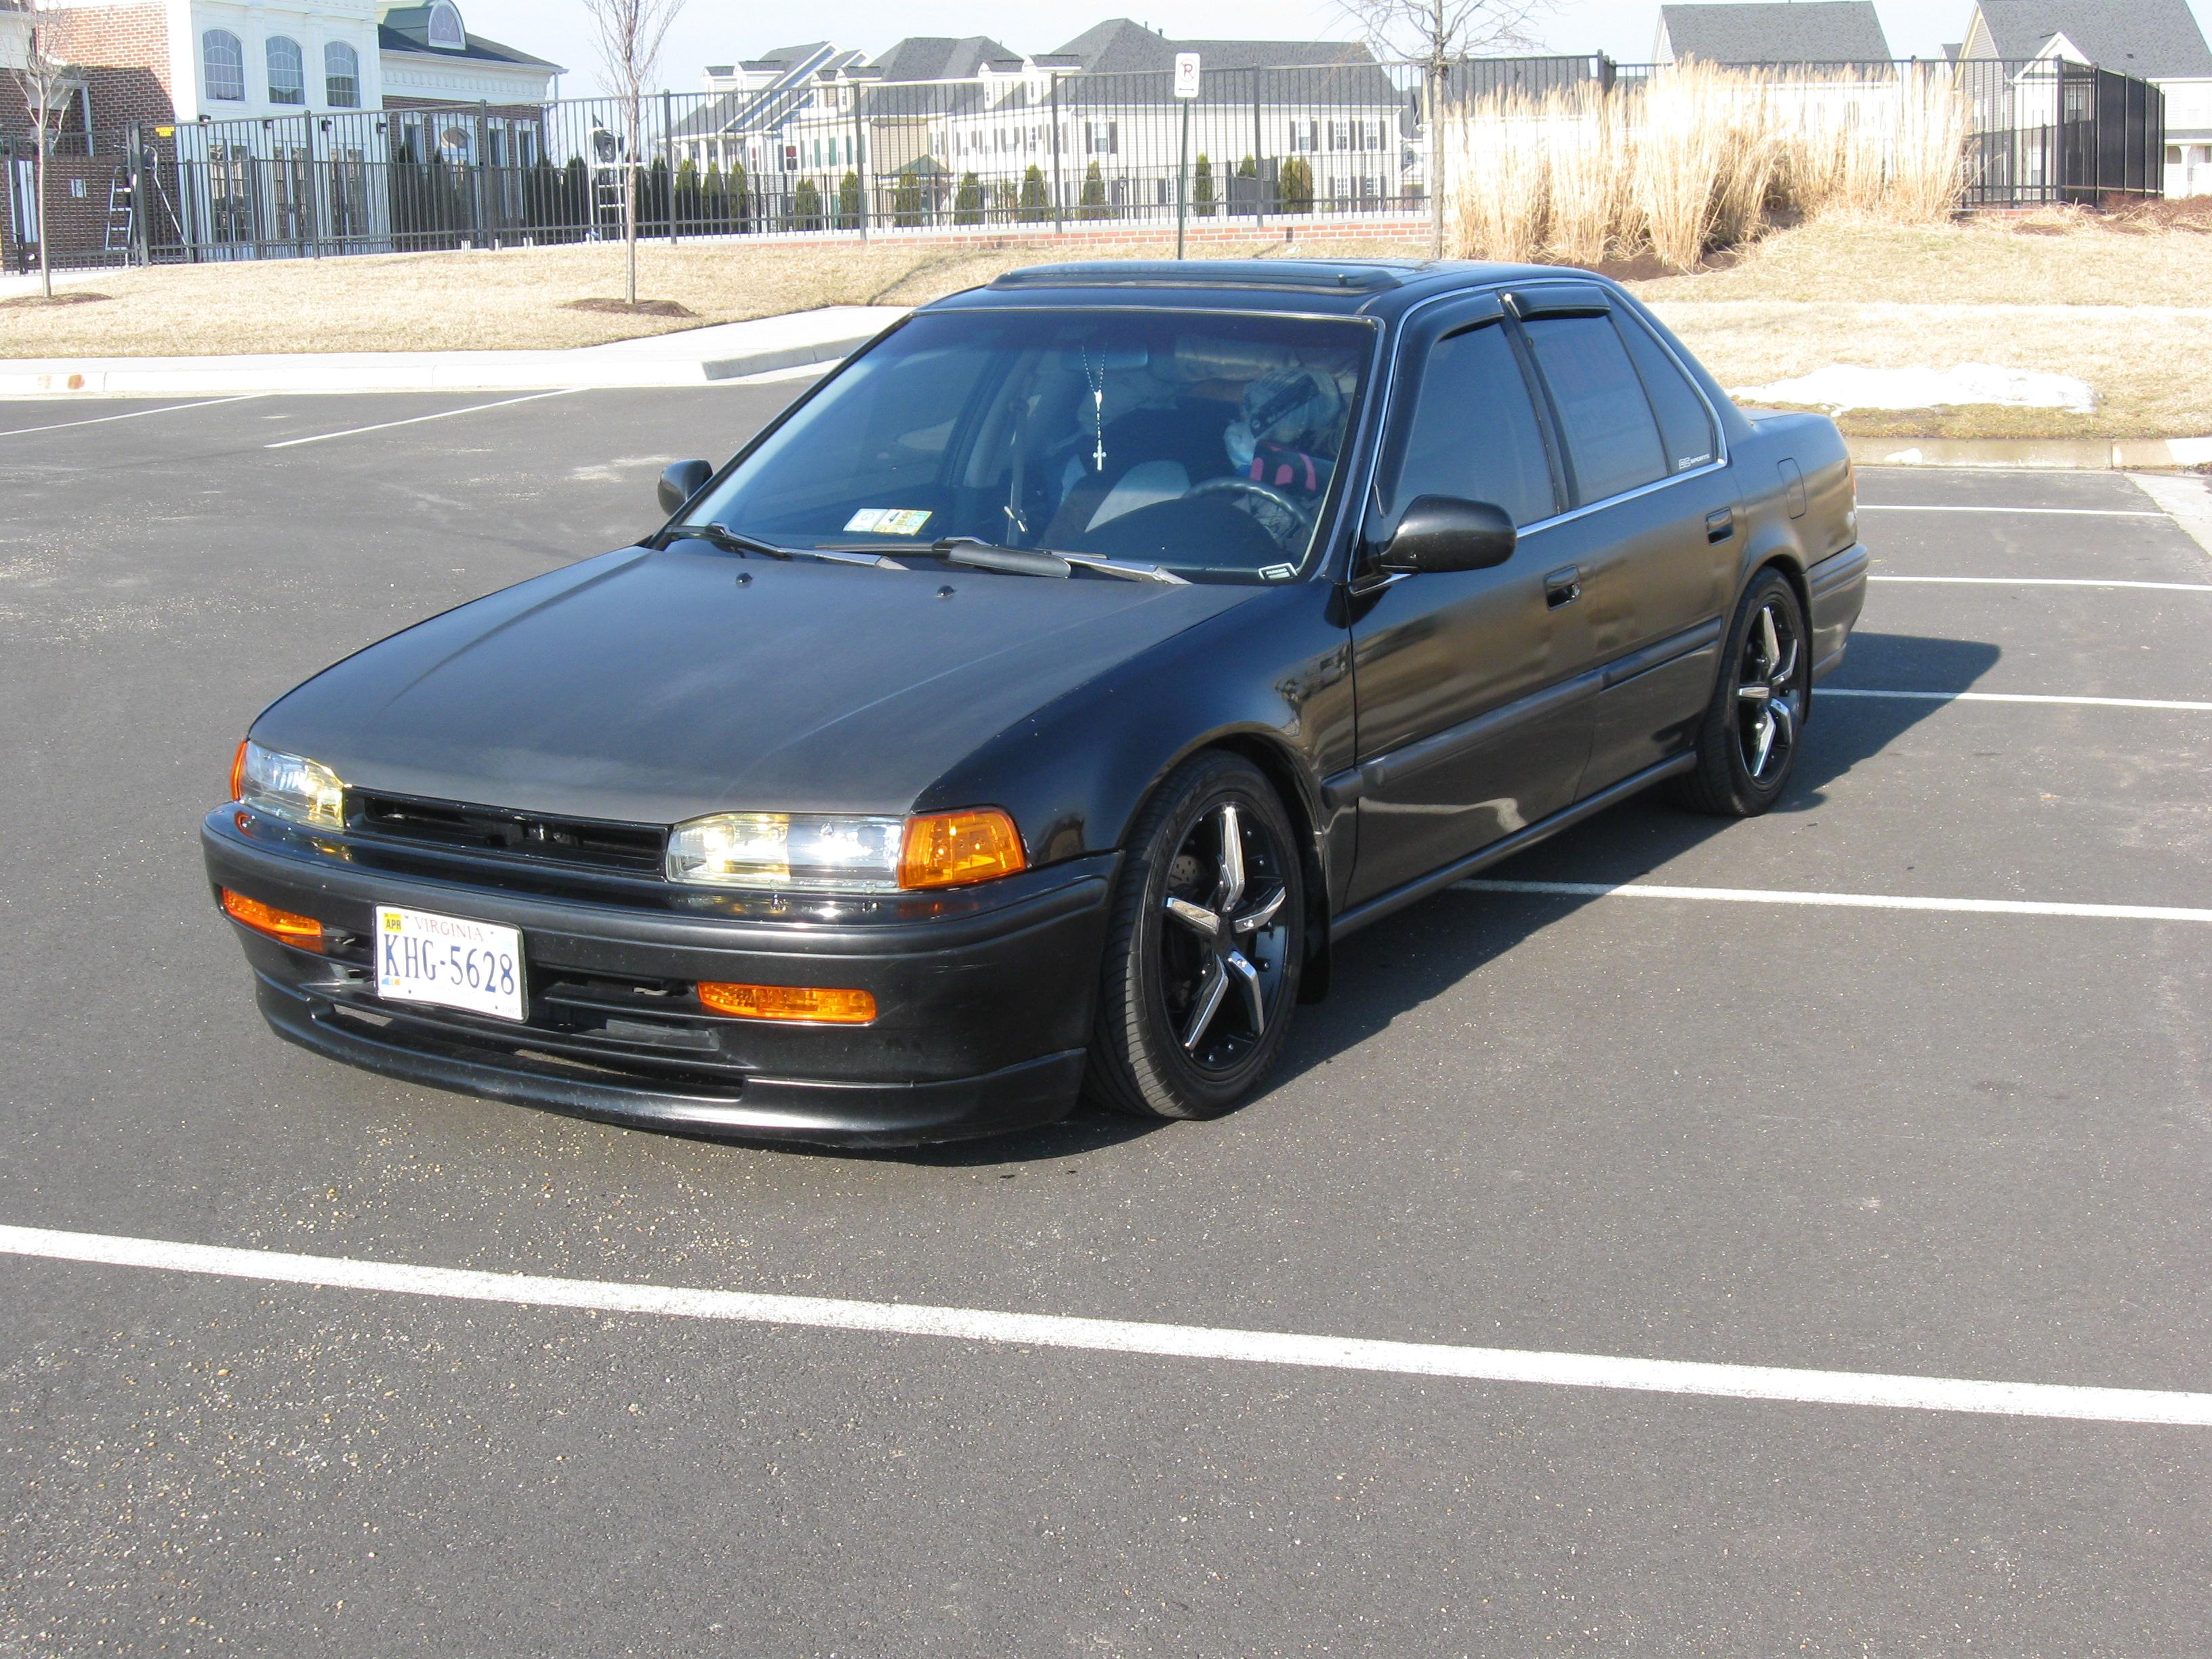 frank1582 1993 Honda Accord Specs, Photos, Modification Info at CarDomain